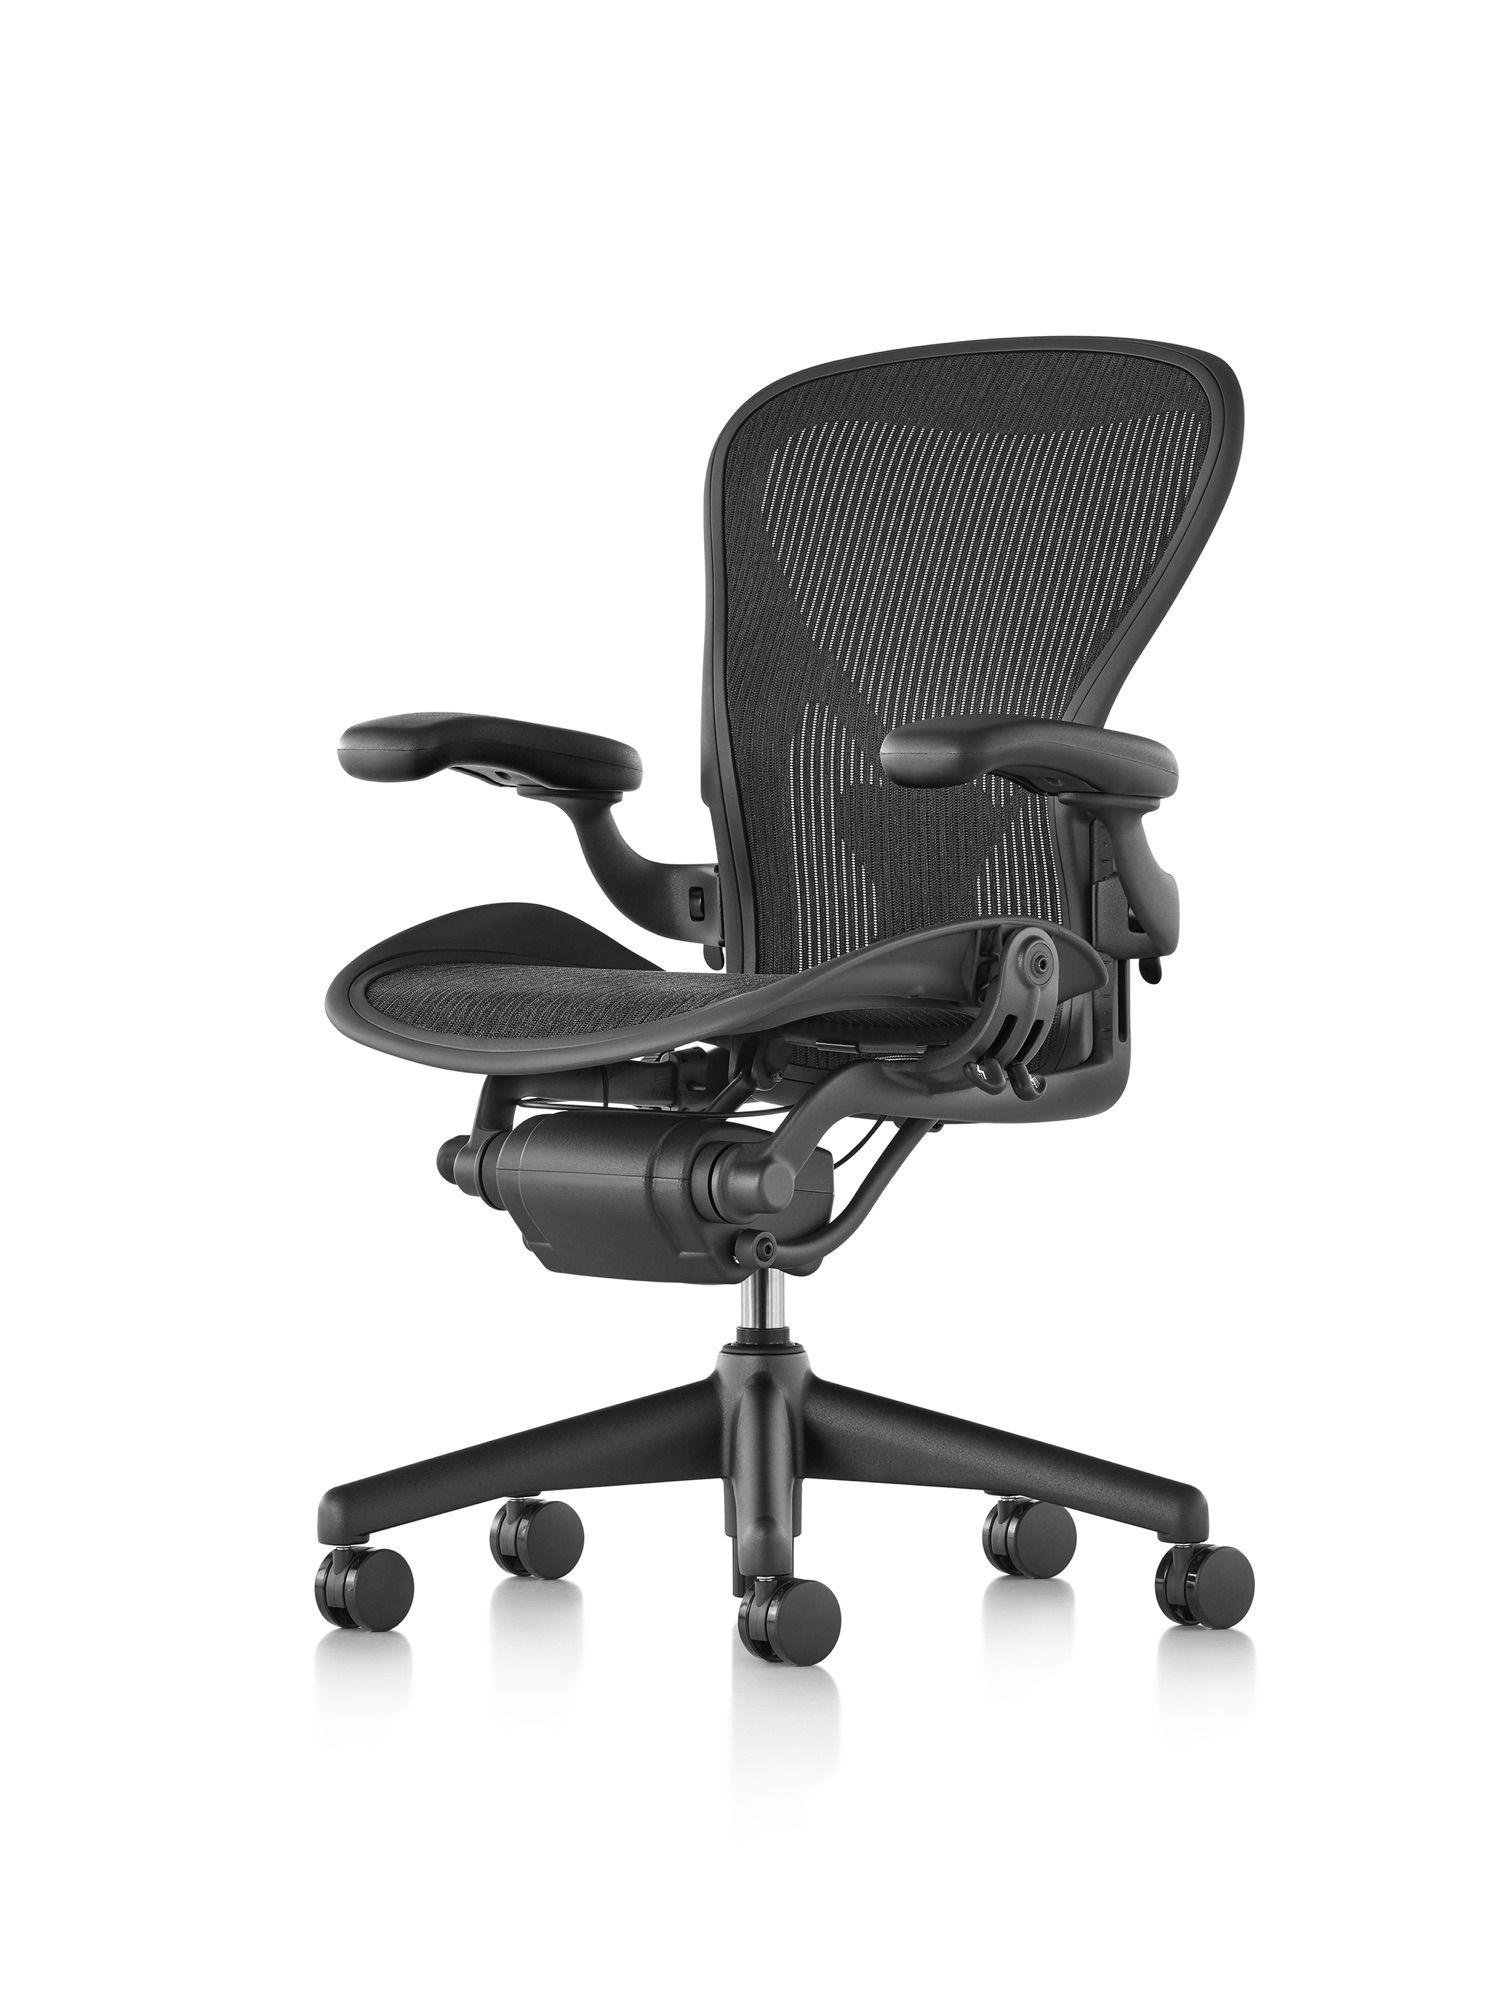 Aeron Chair Chair, Best office chair, Best ergonomic chair